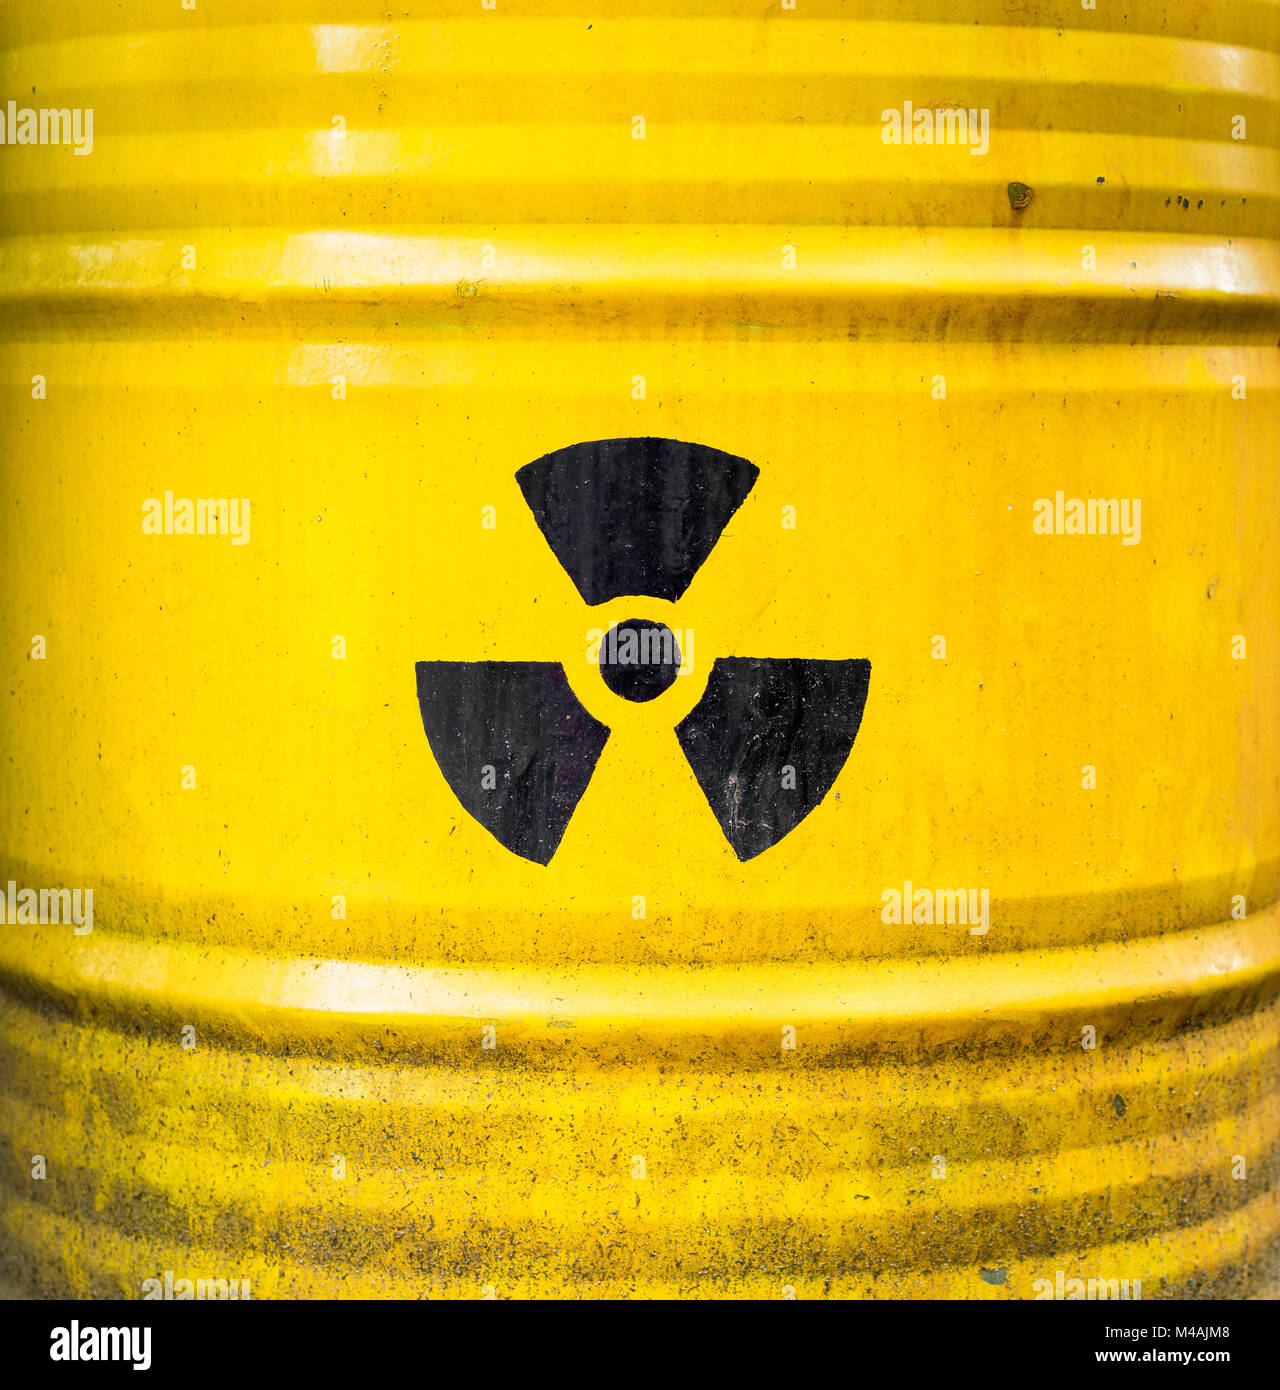 Radioactive sign, icon and symbol on yellow nuclear waste barrel. - Stock Image